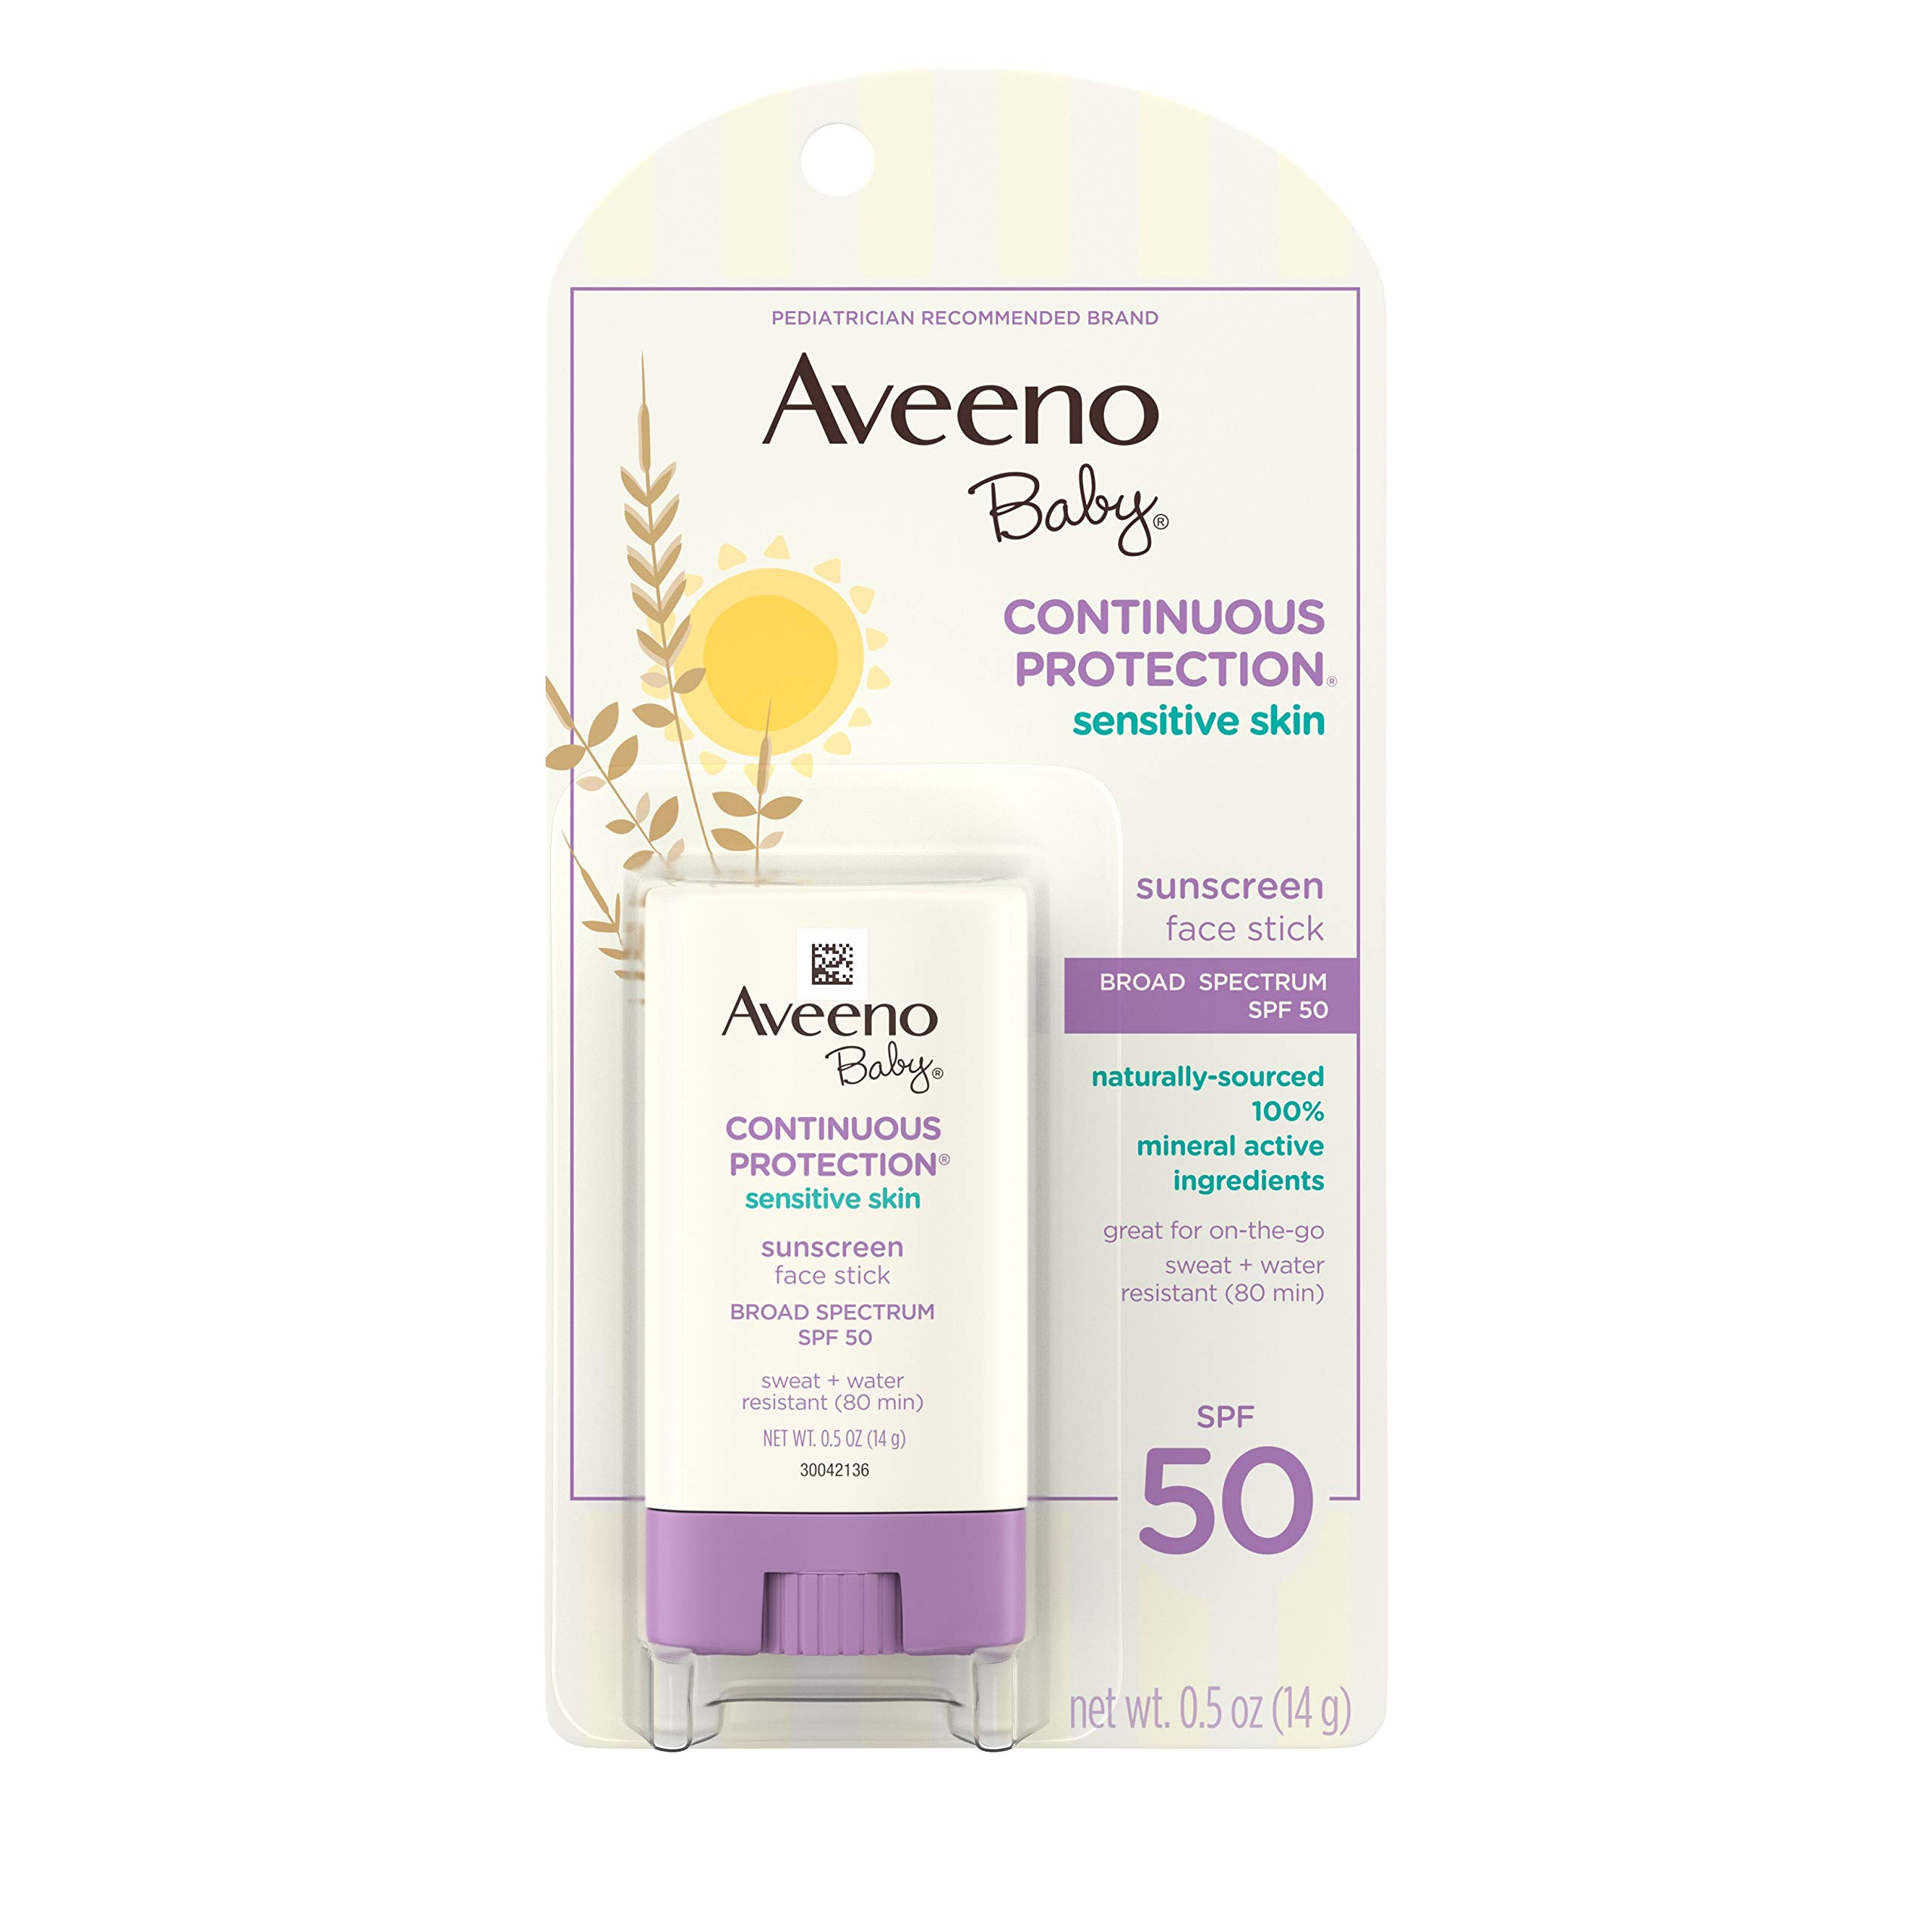 Aveeno Baby Continuous Protection Sensitive Skin Mineral Sunscreen Stick for Face with Broad Spectrum SPF 50, Zinc Oxide & Titanium Dioxide, Oil-Free & Water-Resistant, Travel-Size, 0.5 oz (Pack of 2) by Aveeno